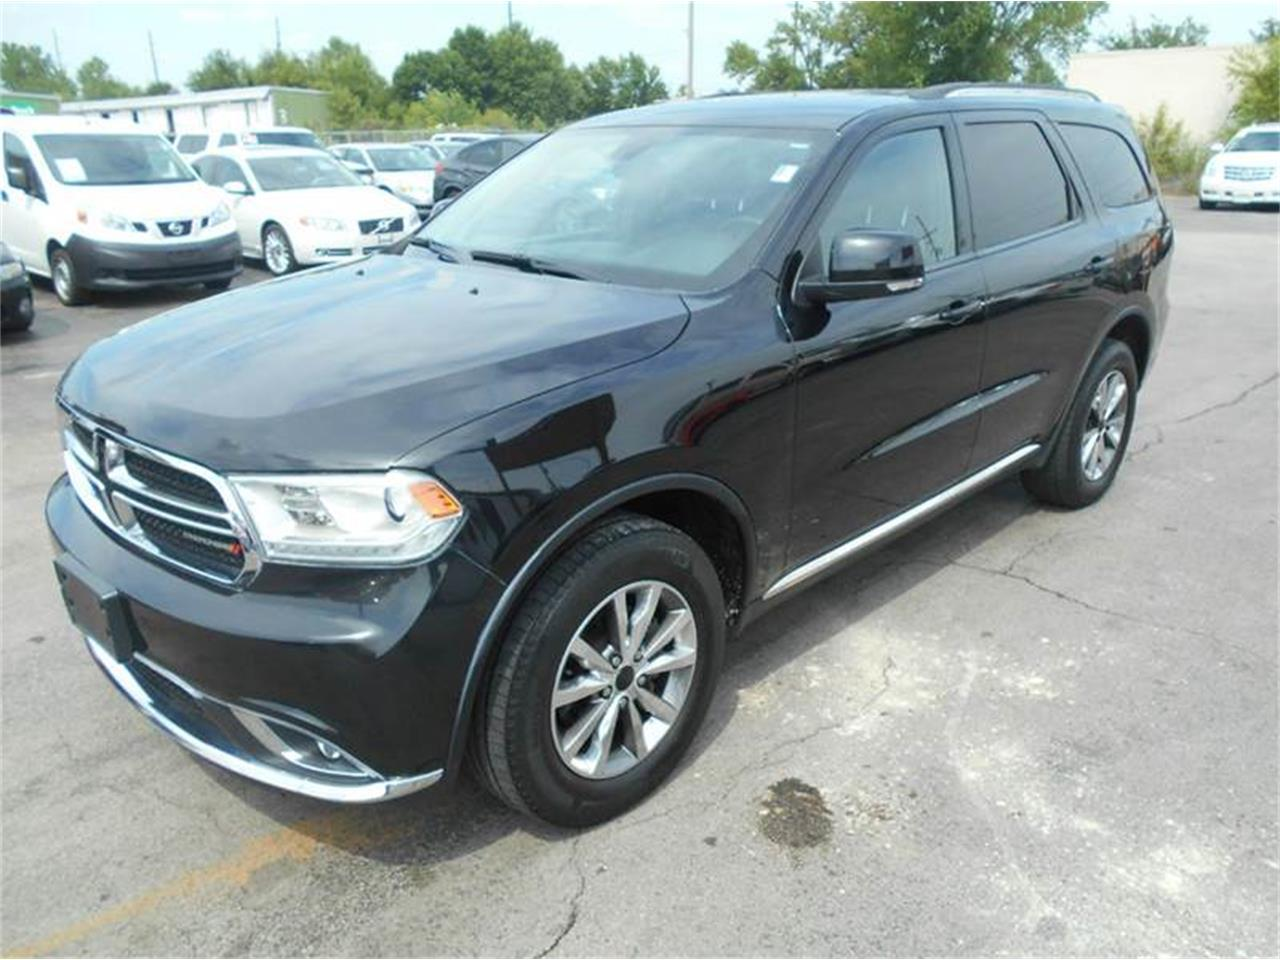 Large Picture of '14 Durango - $24,980.00 - LHAR